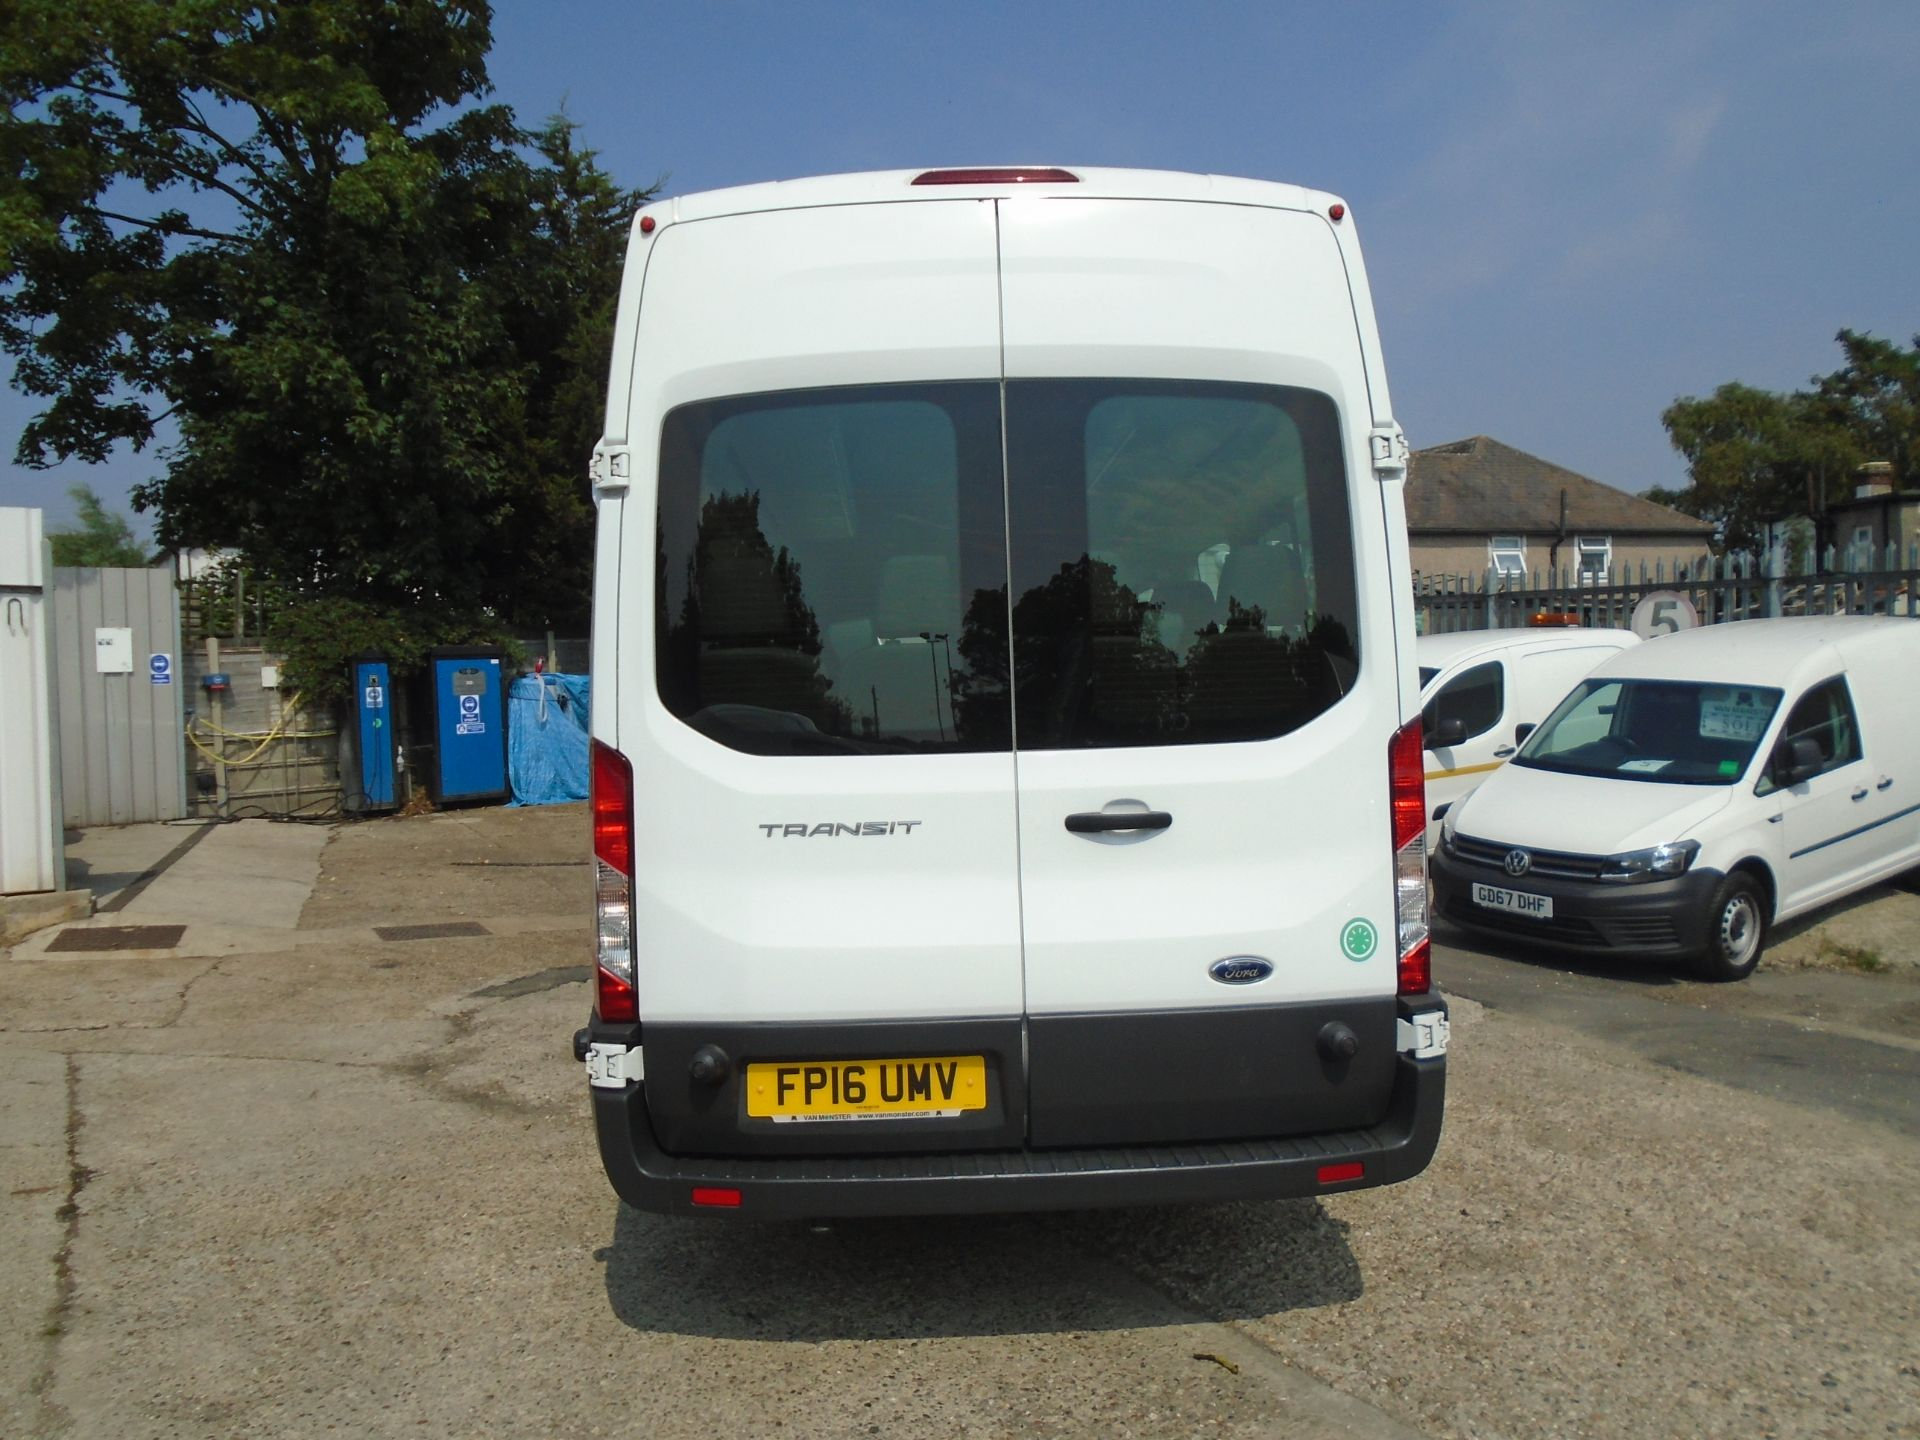 2016 Ford Transit 2.2 Tdci 125Ps H3 17 Seater (FP16UMV) Image 5